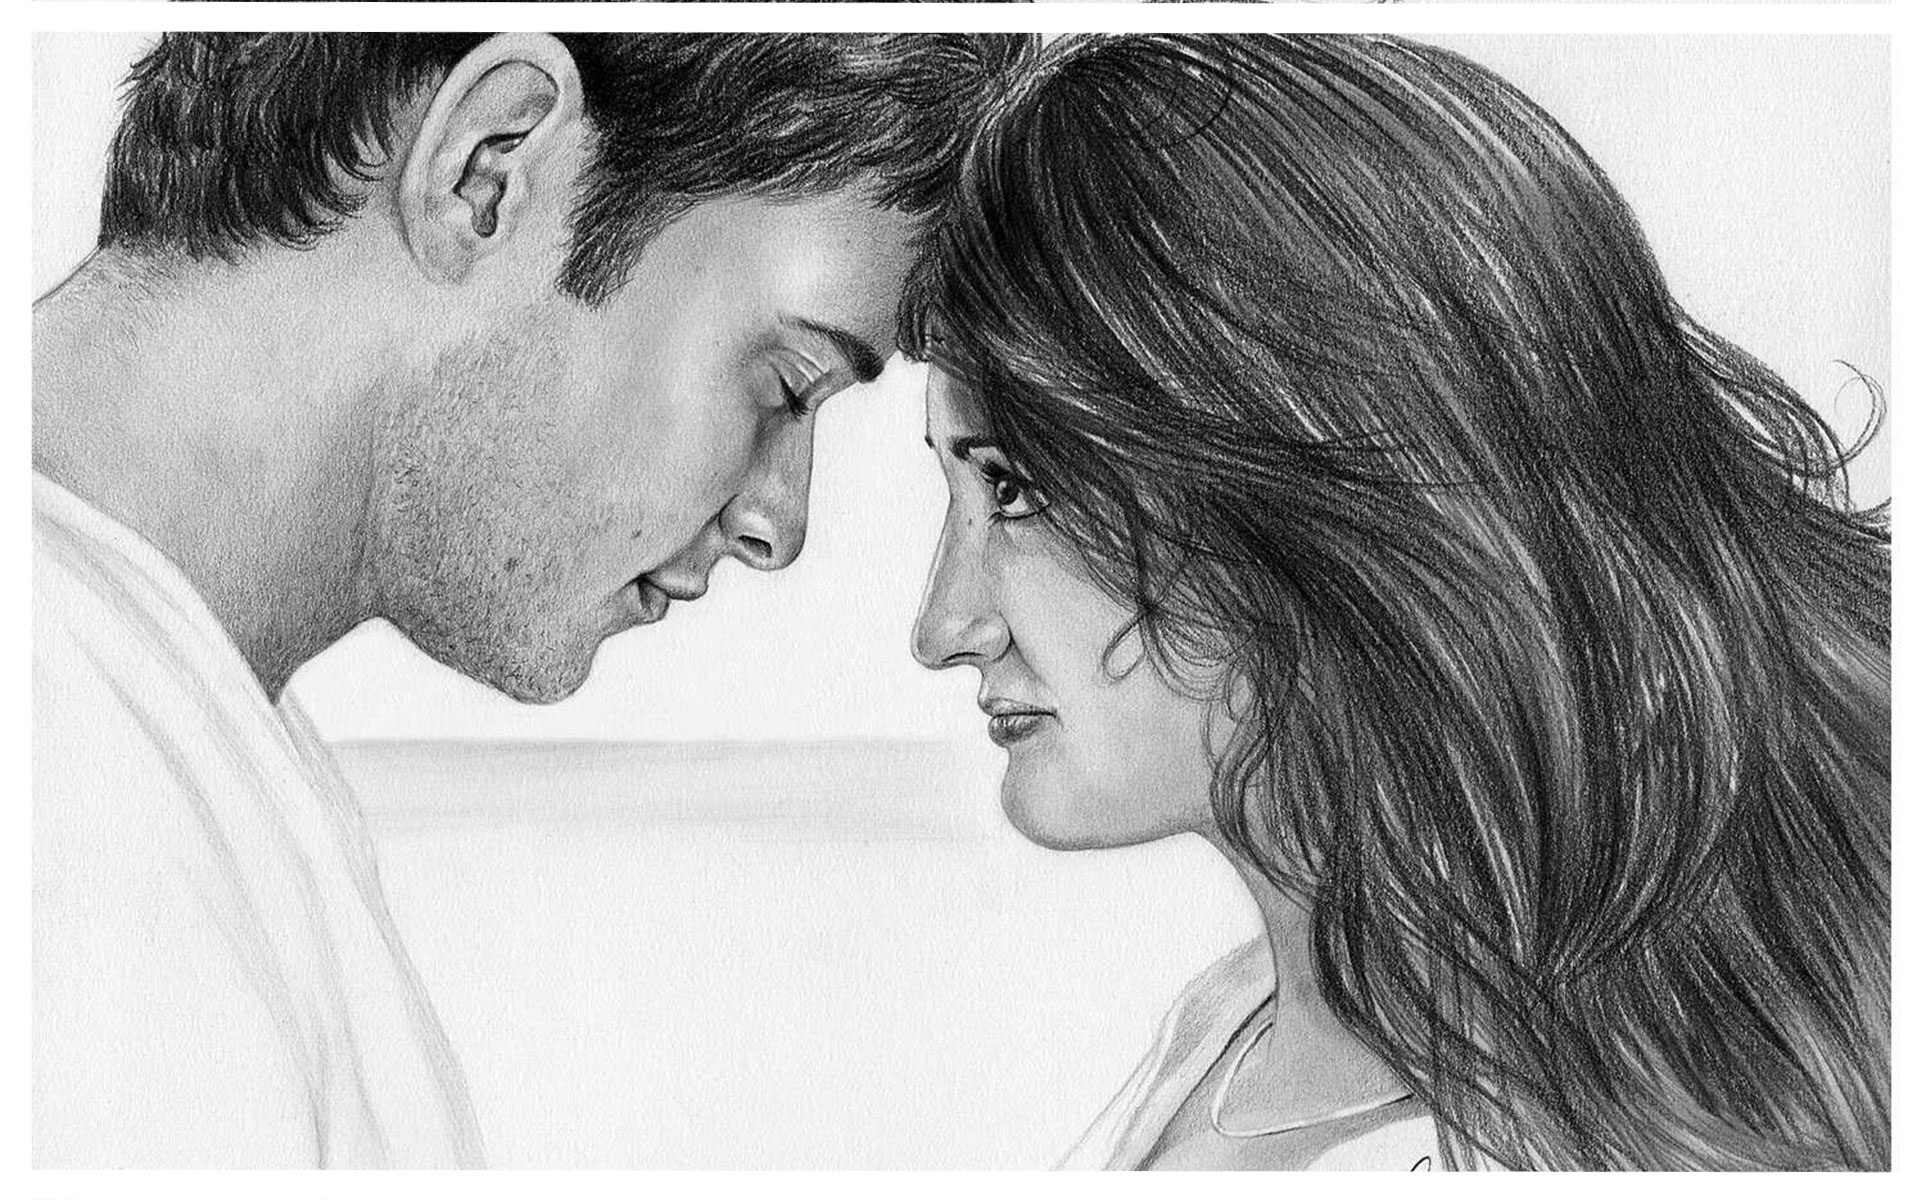 Love Wallpaper In Drawing : cute love drawings pencil art HD romantic sketch wallpaper